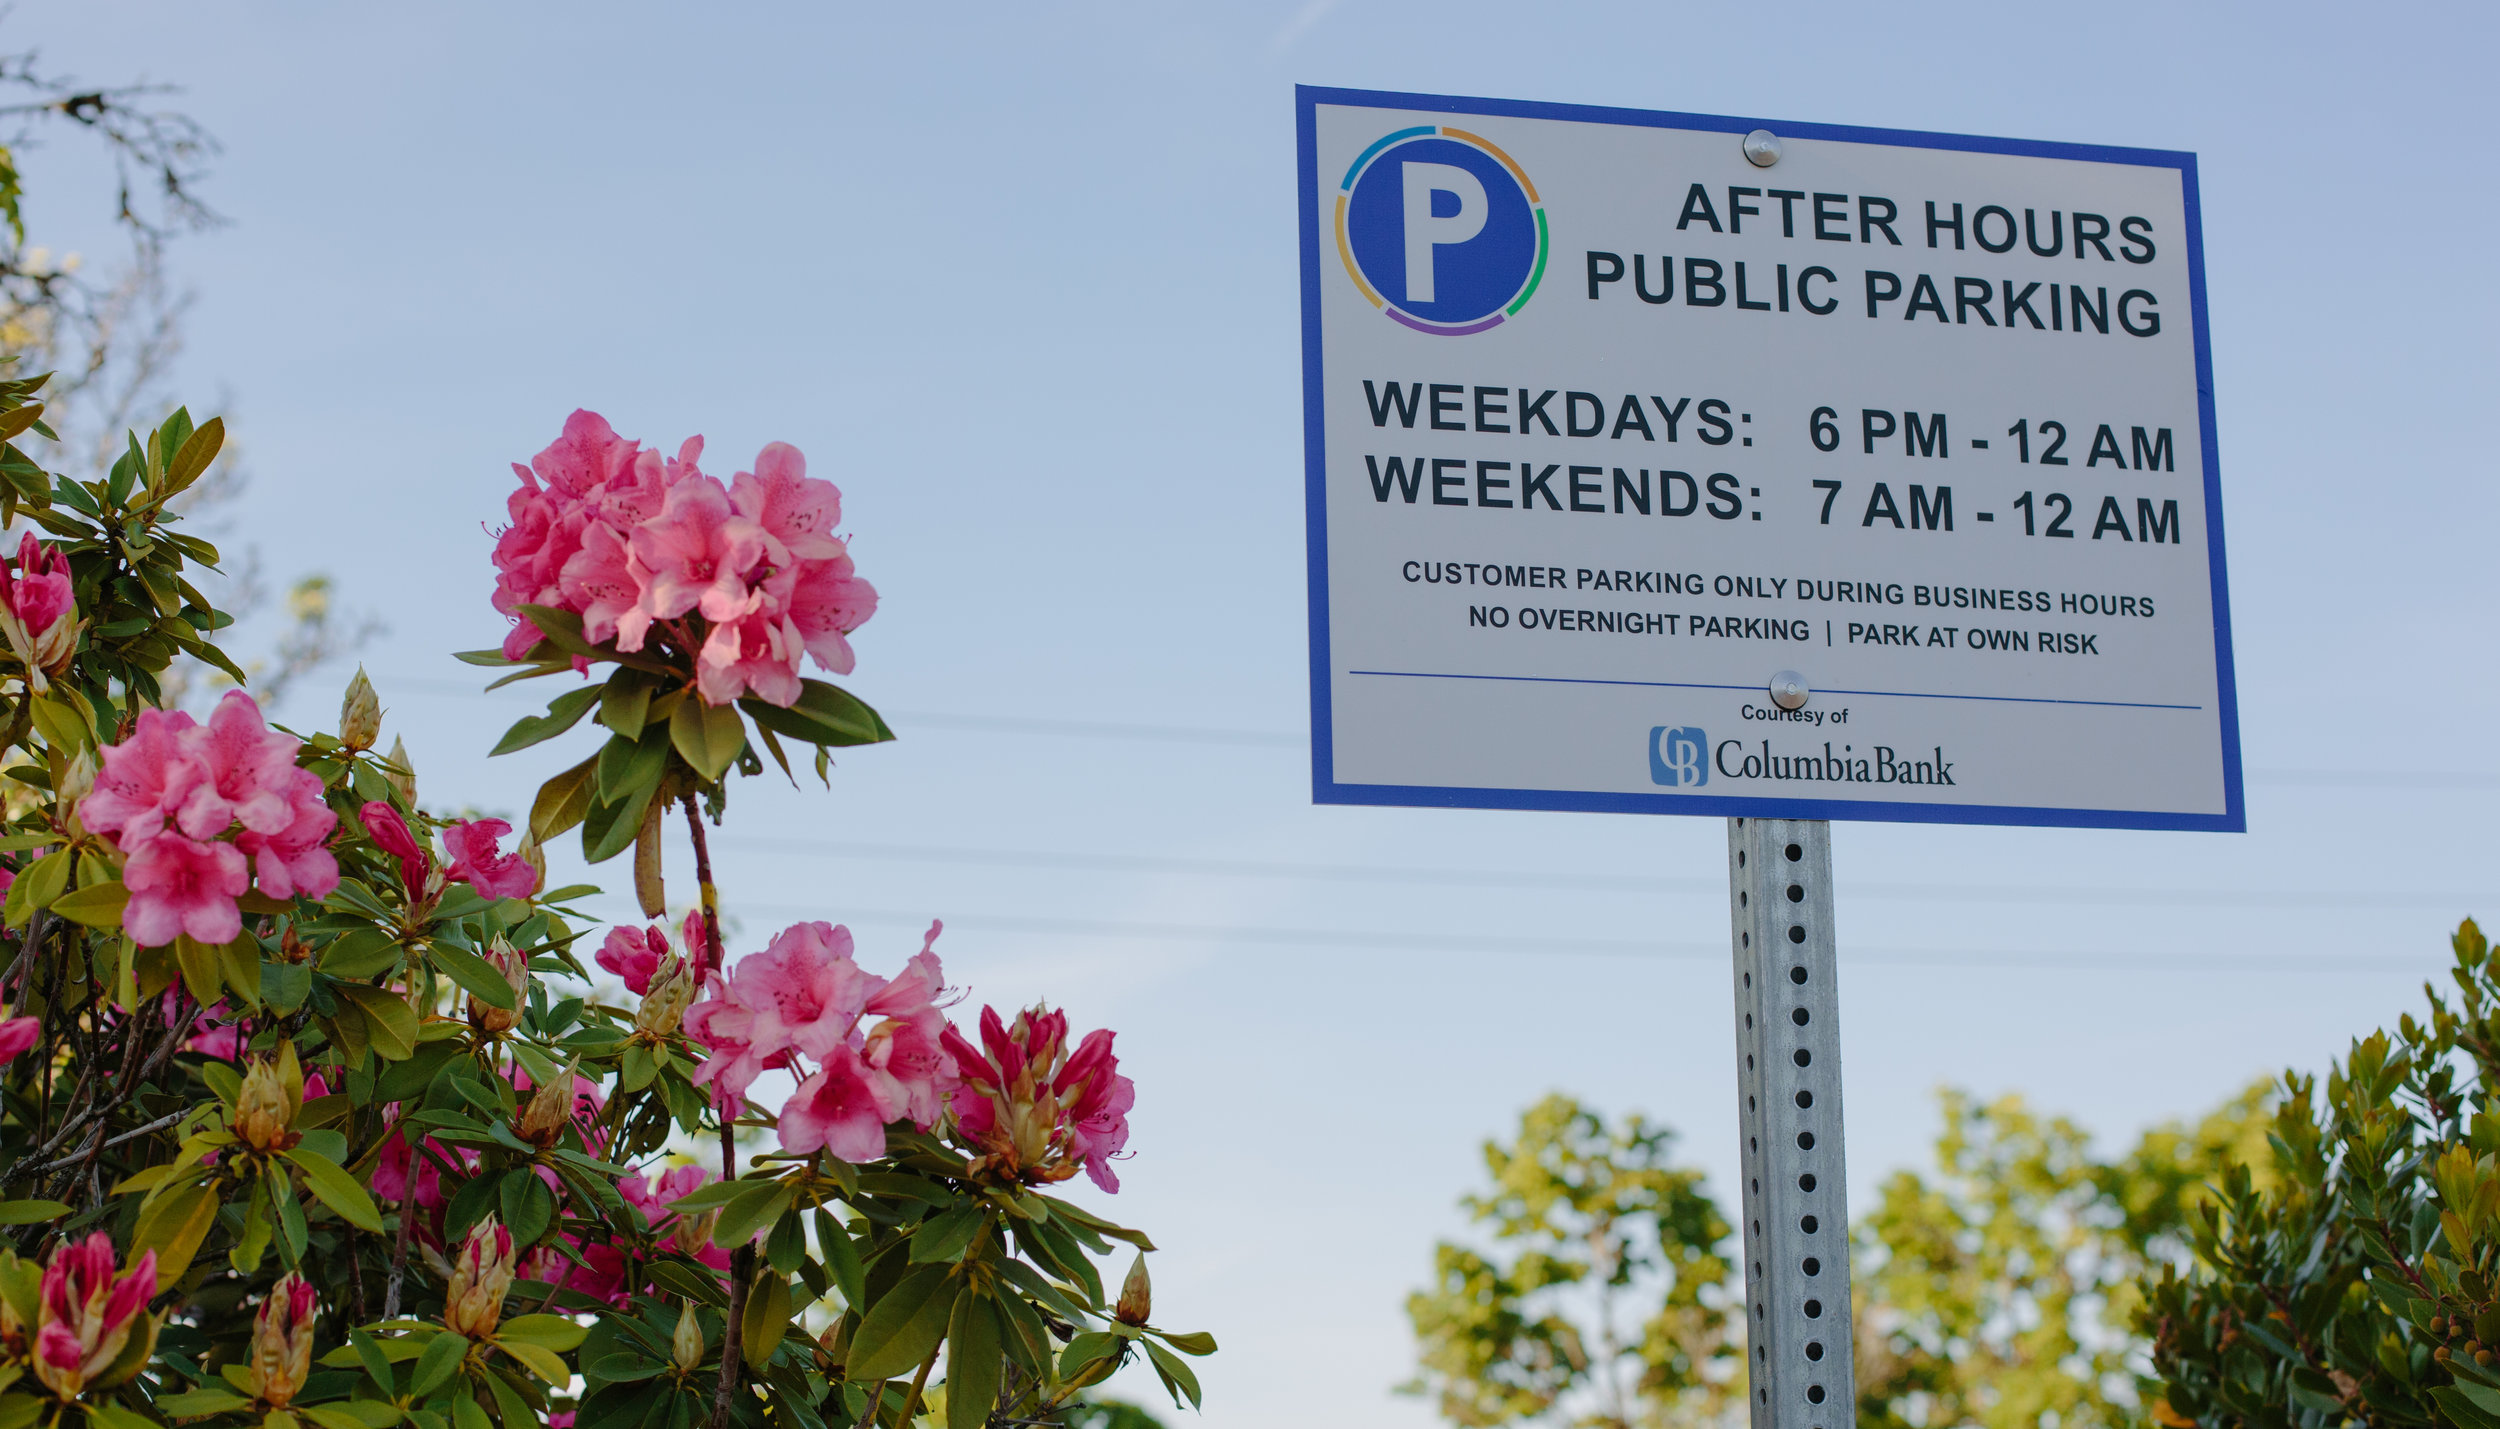 Columbia Bank in Downtown Beaverton have provided after hours public parking